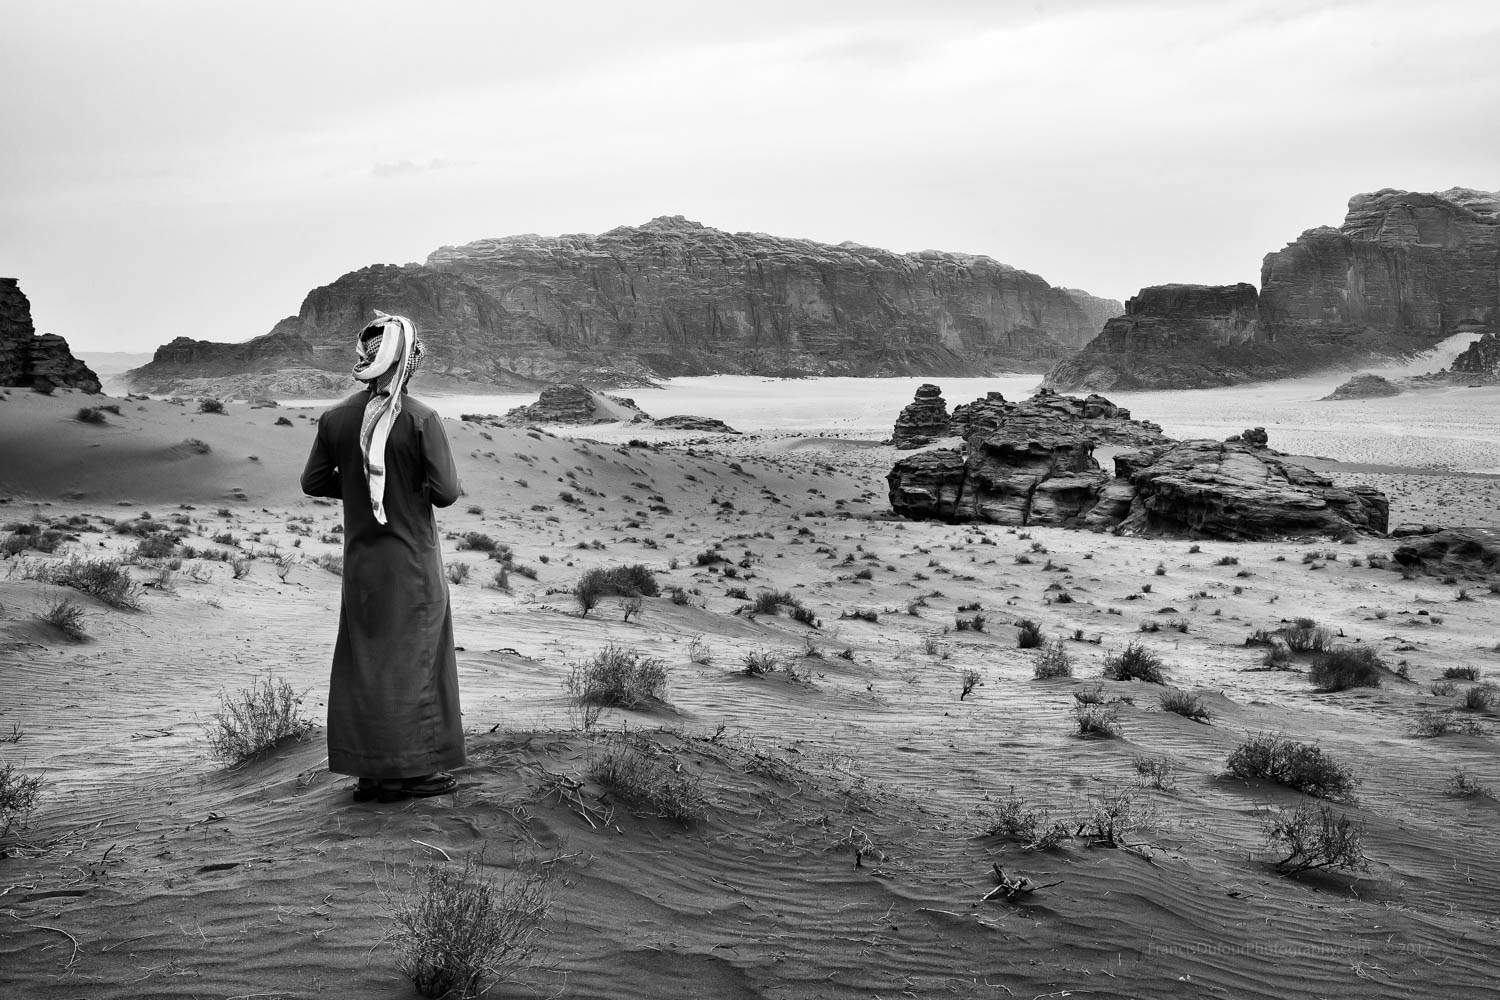 """2017 International Monovisions Awards in London - Winning Entry - Honorable Mention -""""A Bedouin in Wadi Rum""""."""